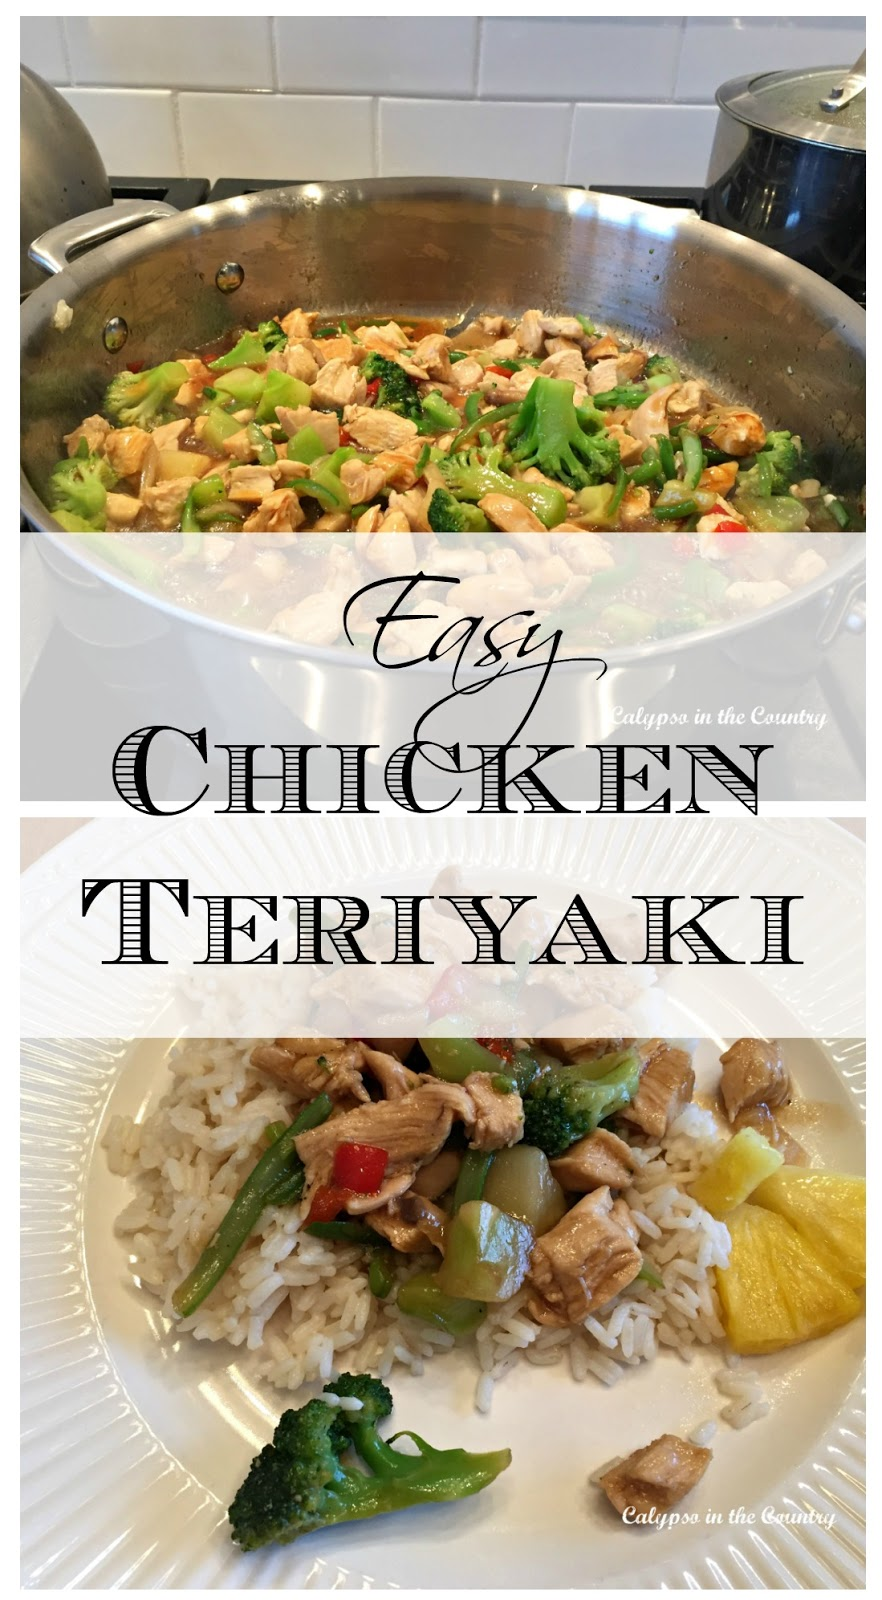 Easy Chicken Teriyaki Stir Fry Recipe - Calypso in the Country Blog